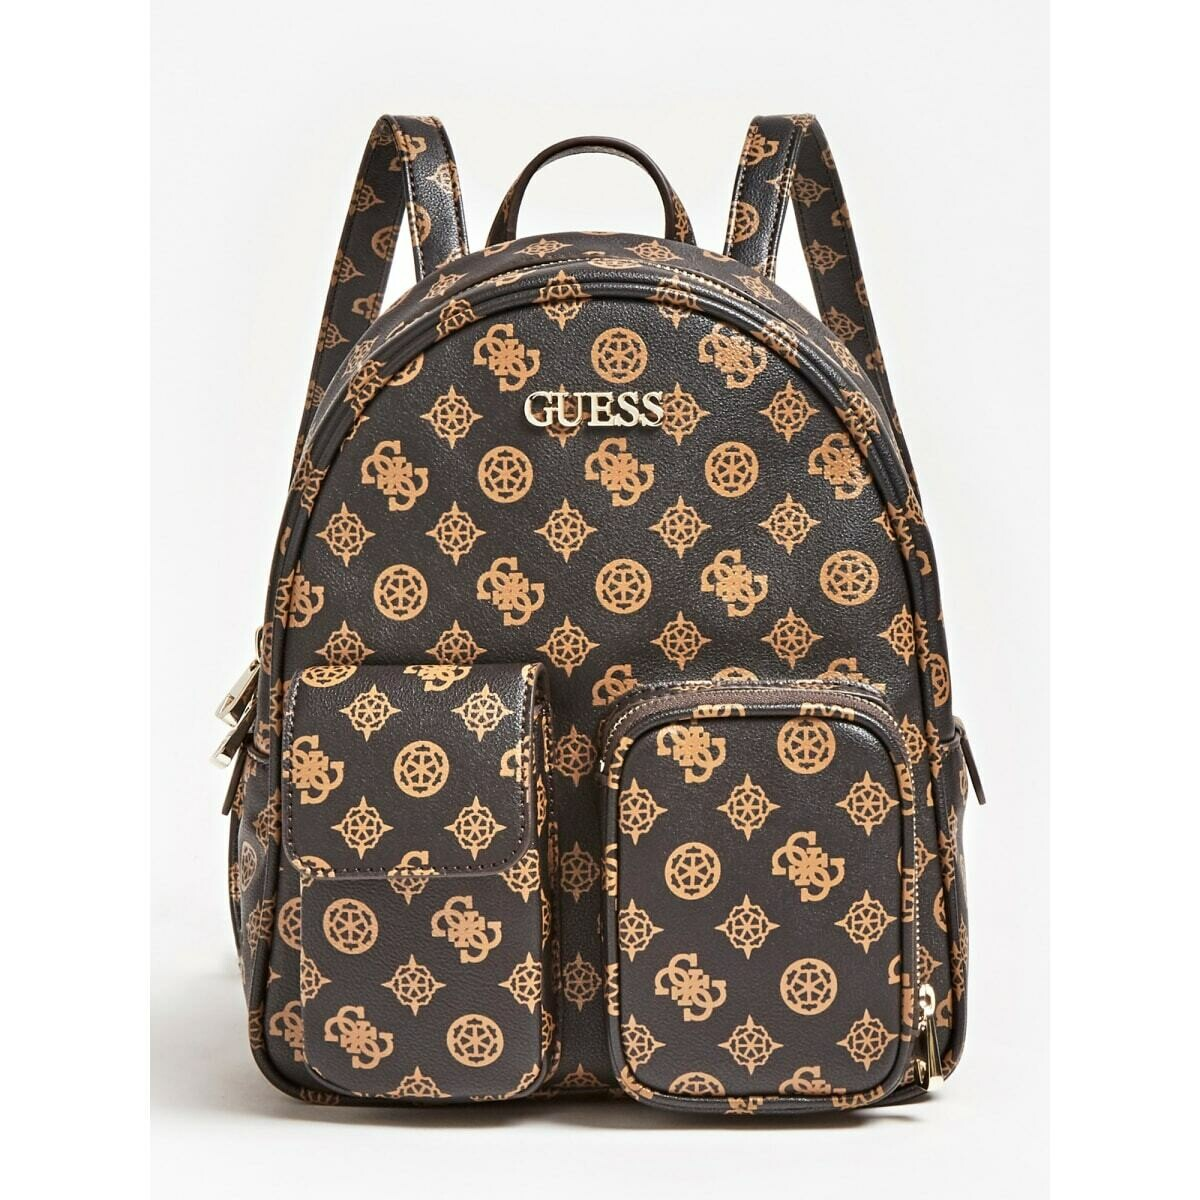 Guess Utility vibe brown